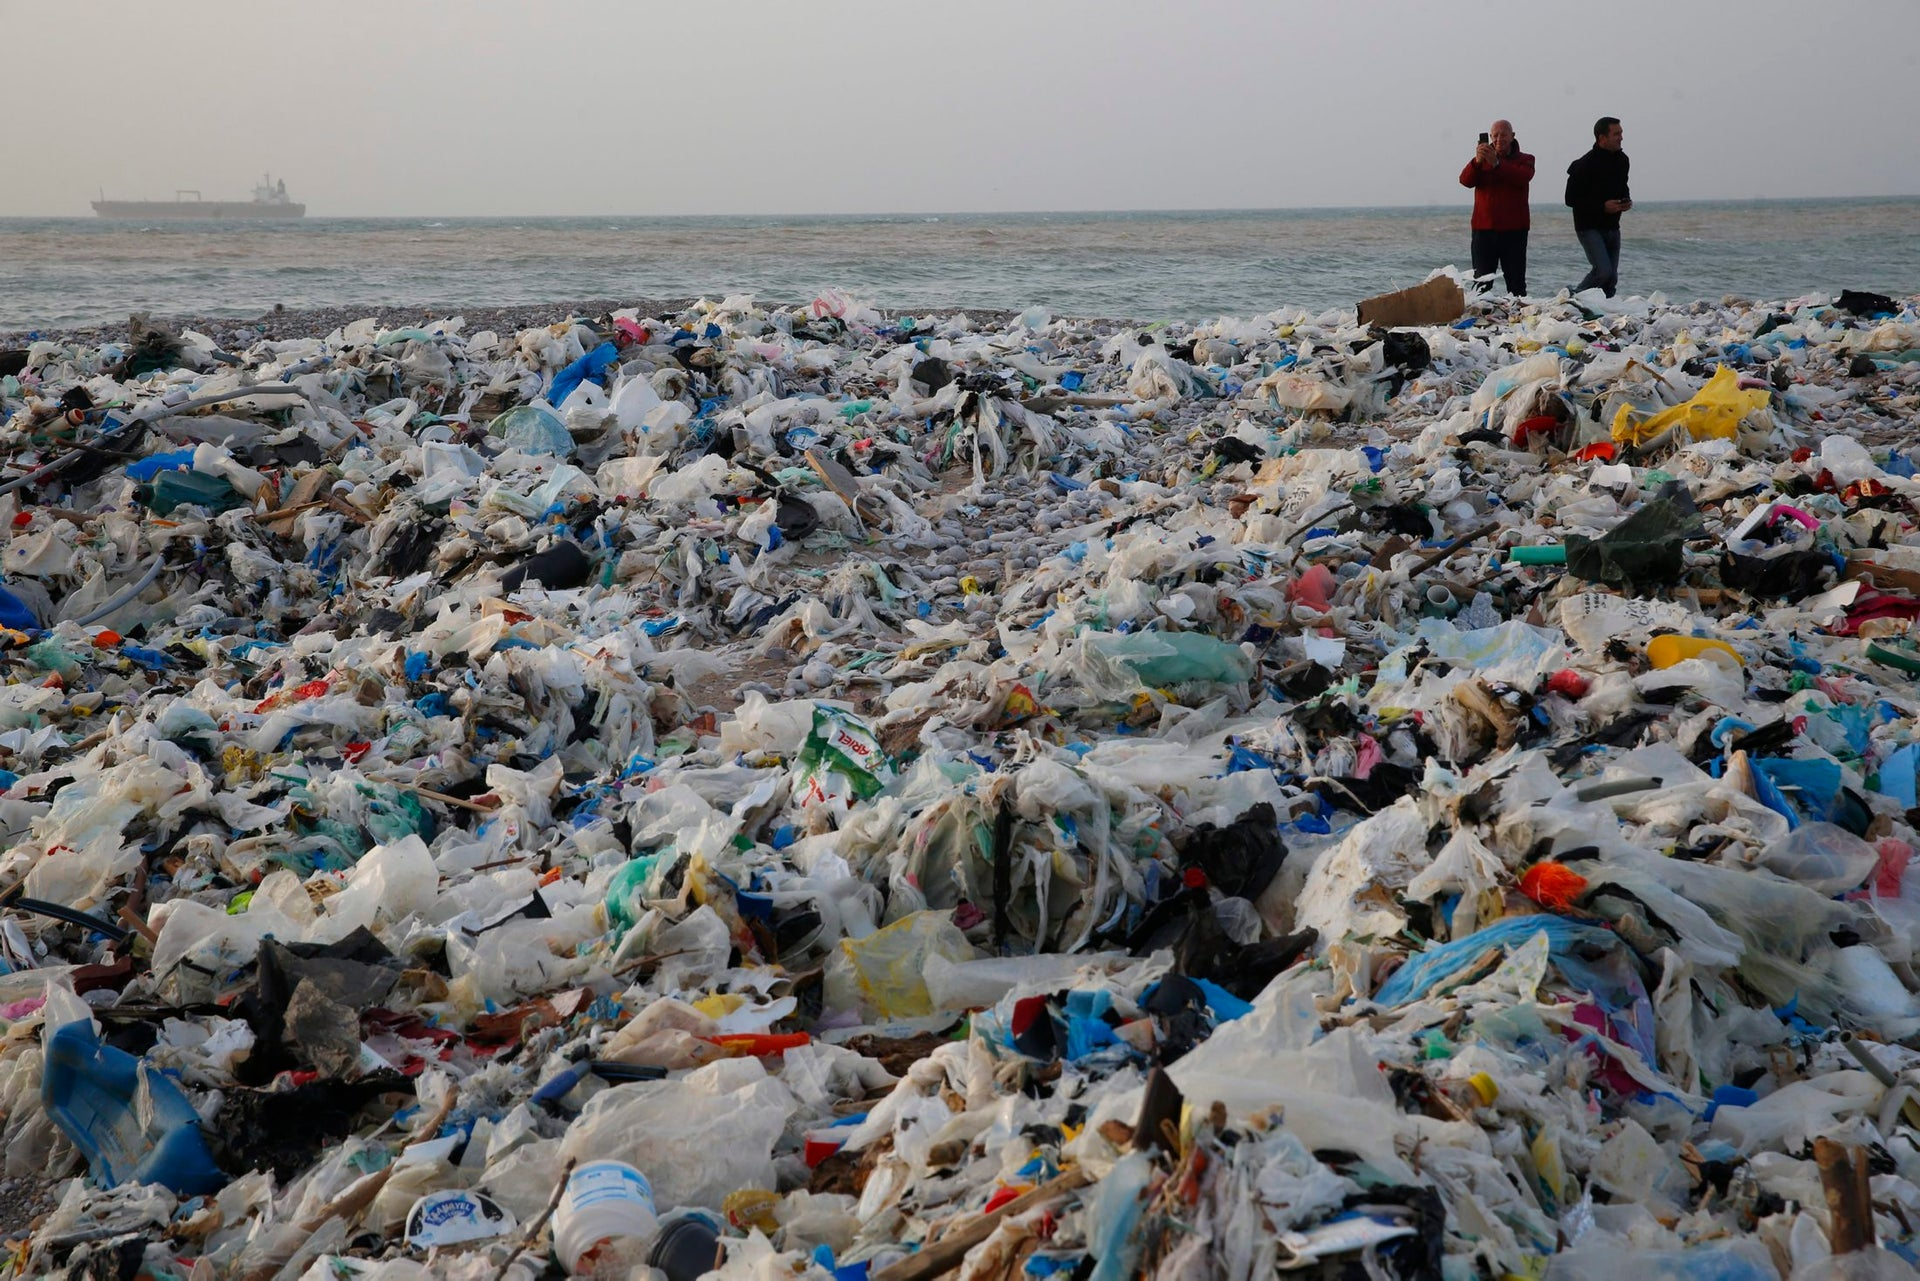 In this Monday, Jan. 22, 2018, photo, a man takes photos of piles of garbage washed on shore after an extended storm battered the Mediterranean country at Zouq Mosbeh costal town, north of Beirut, Lebanon. Environmentalists say a winter storm has pushed a wave of trash onto the Lebanese shore outside Beirut, stirring outrage over a waste management crisis that has choked the country since 2015.